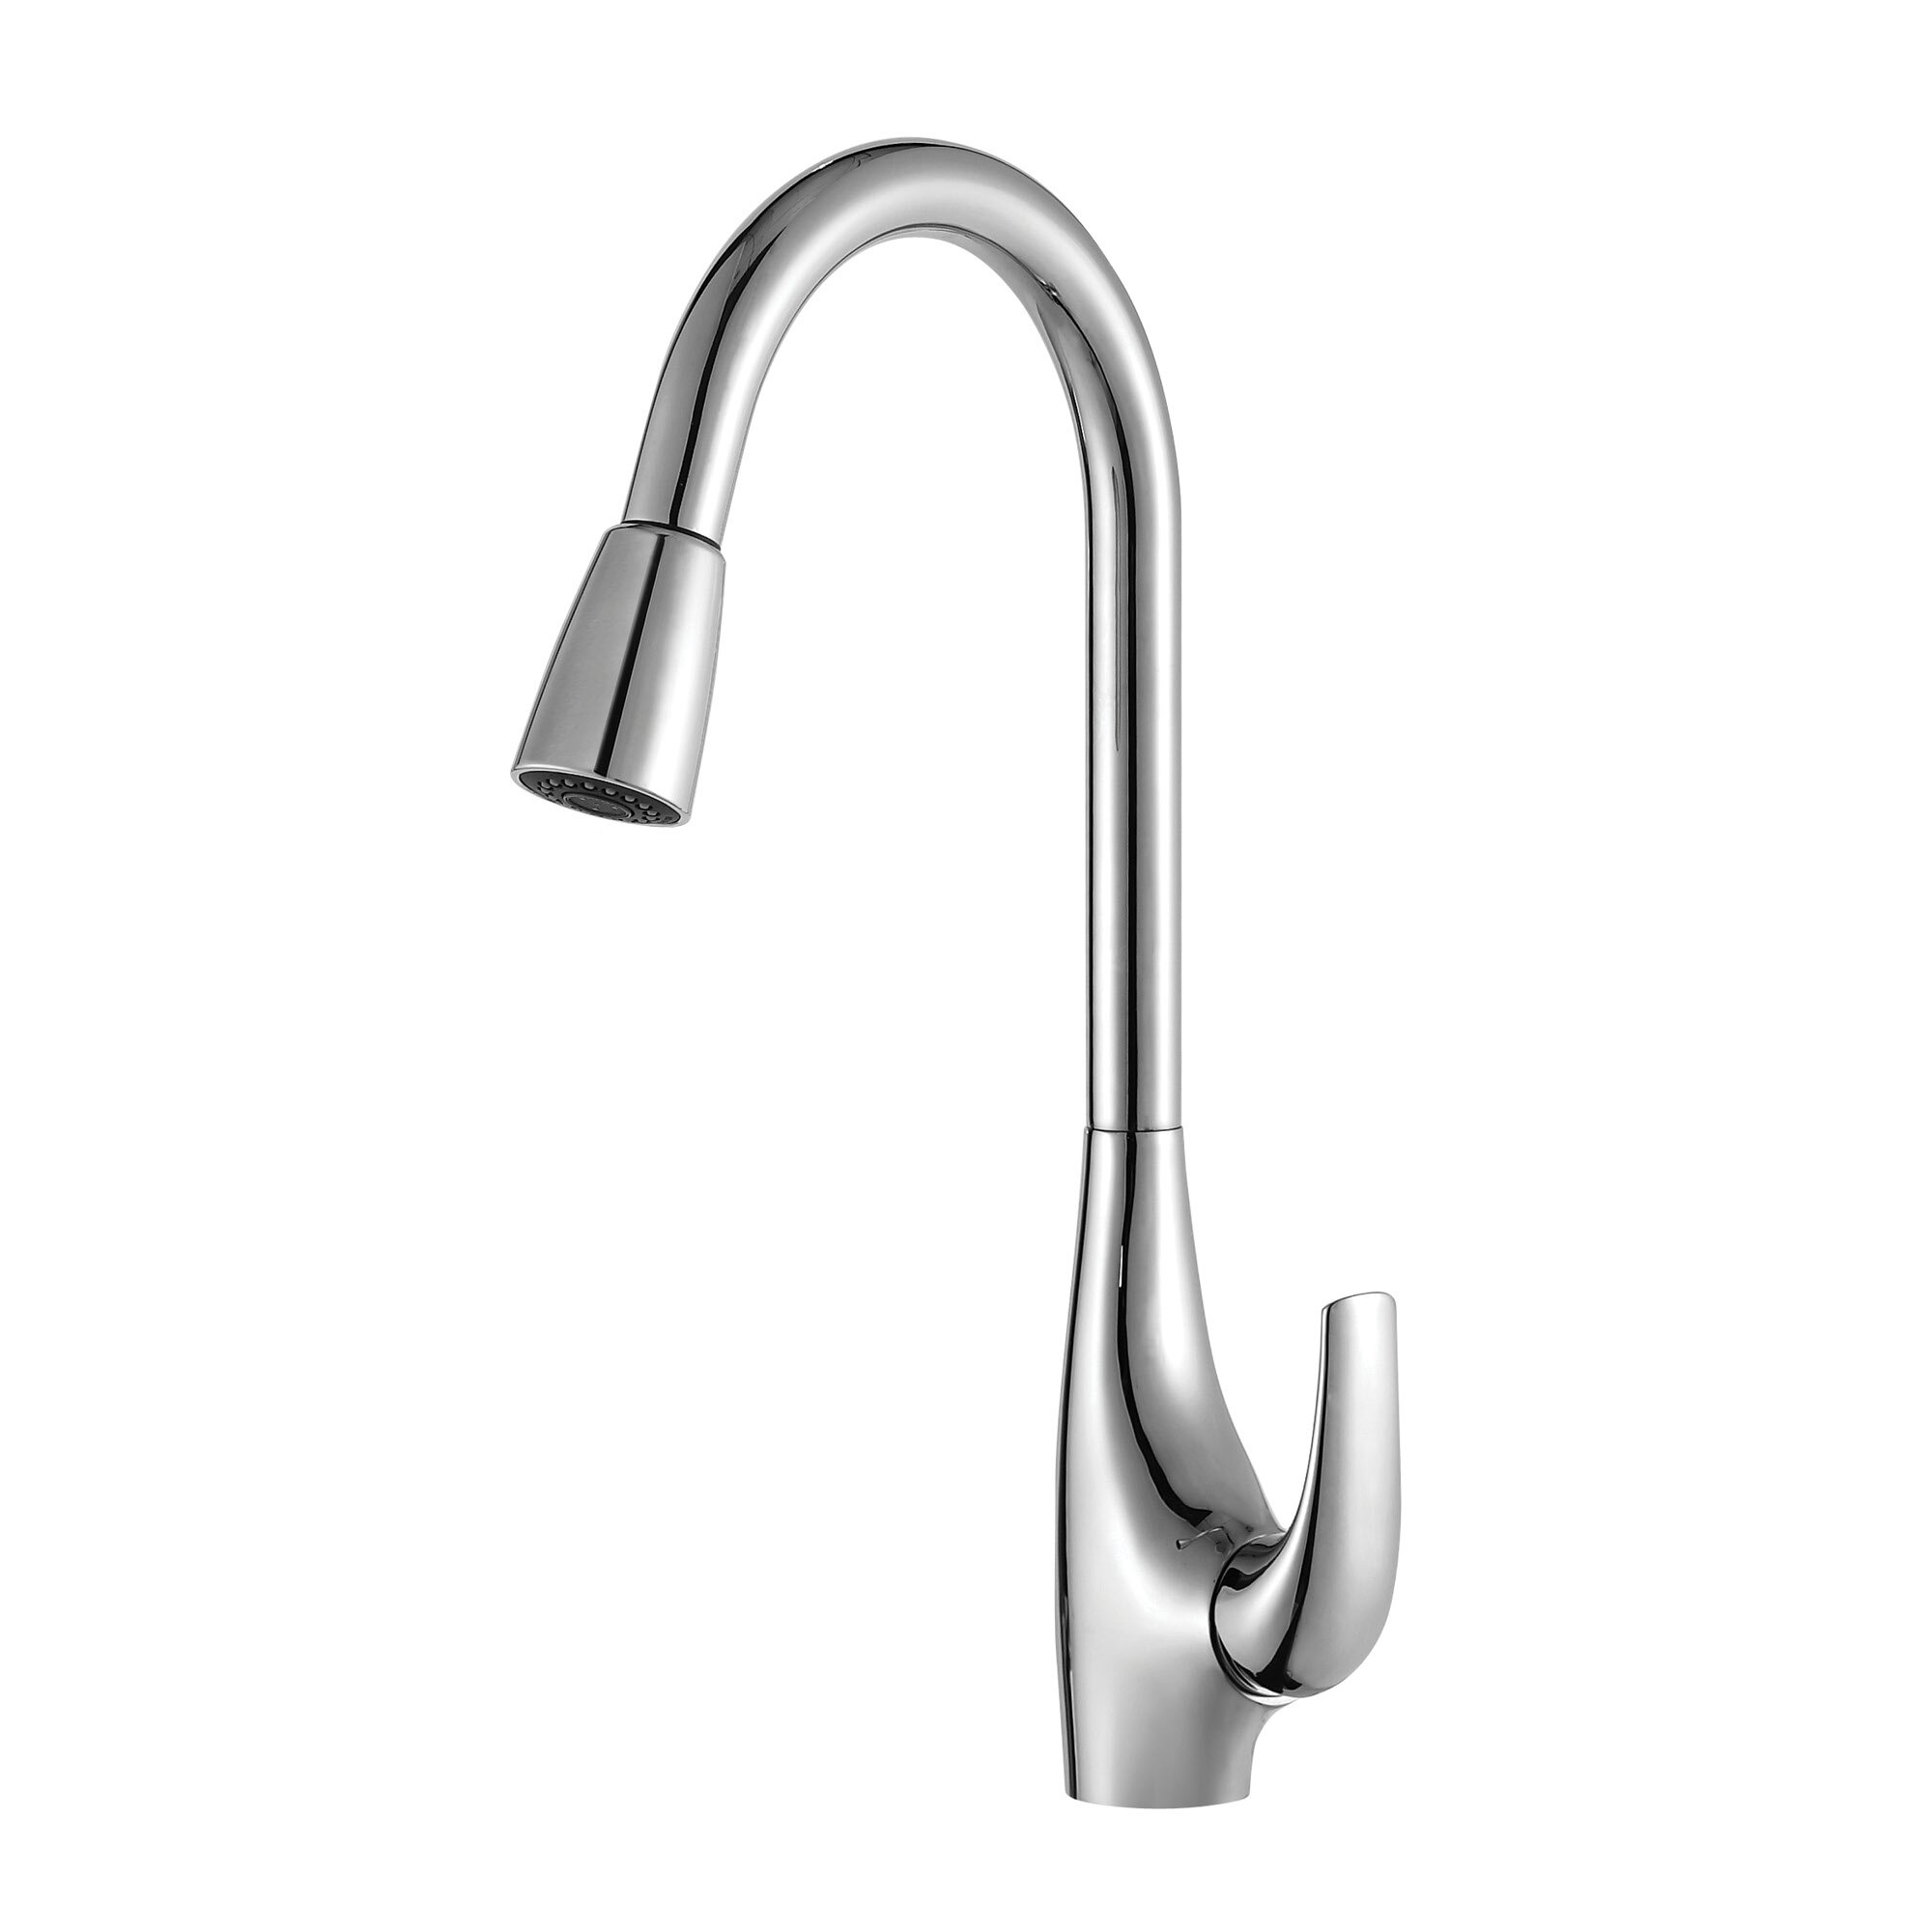 How To Take Off Kitchen Faucet Handle